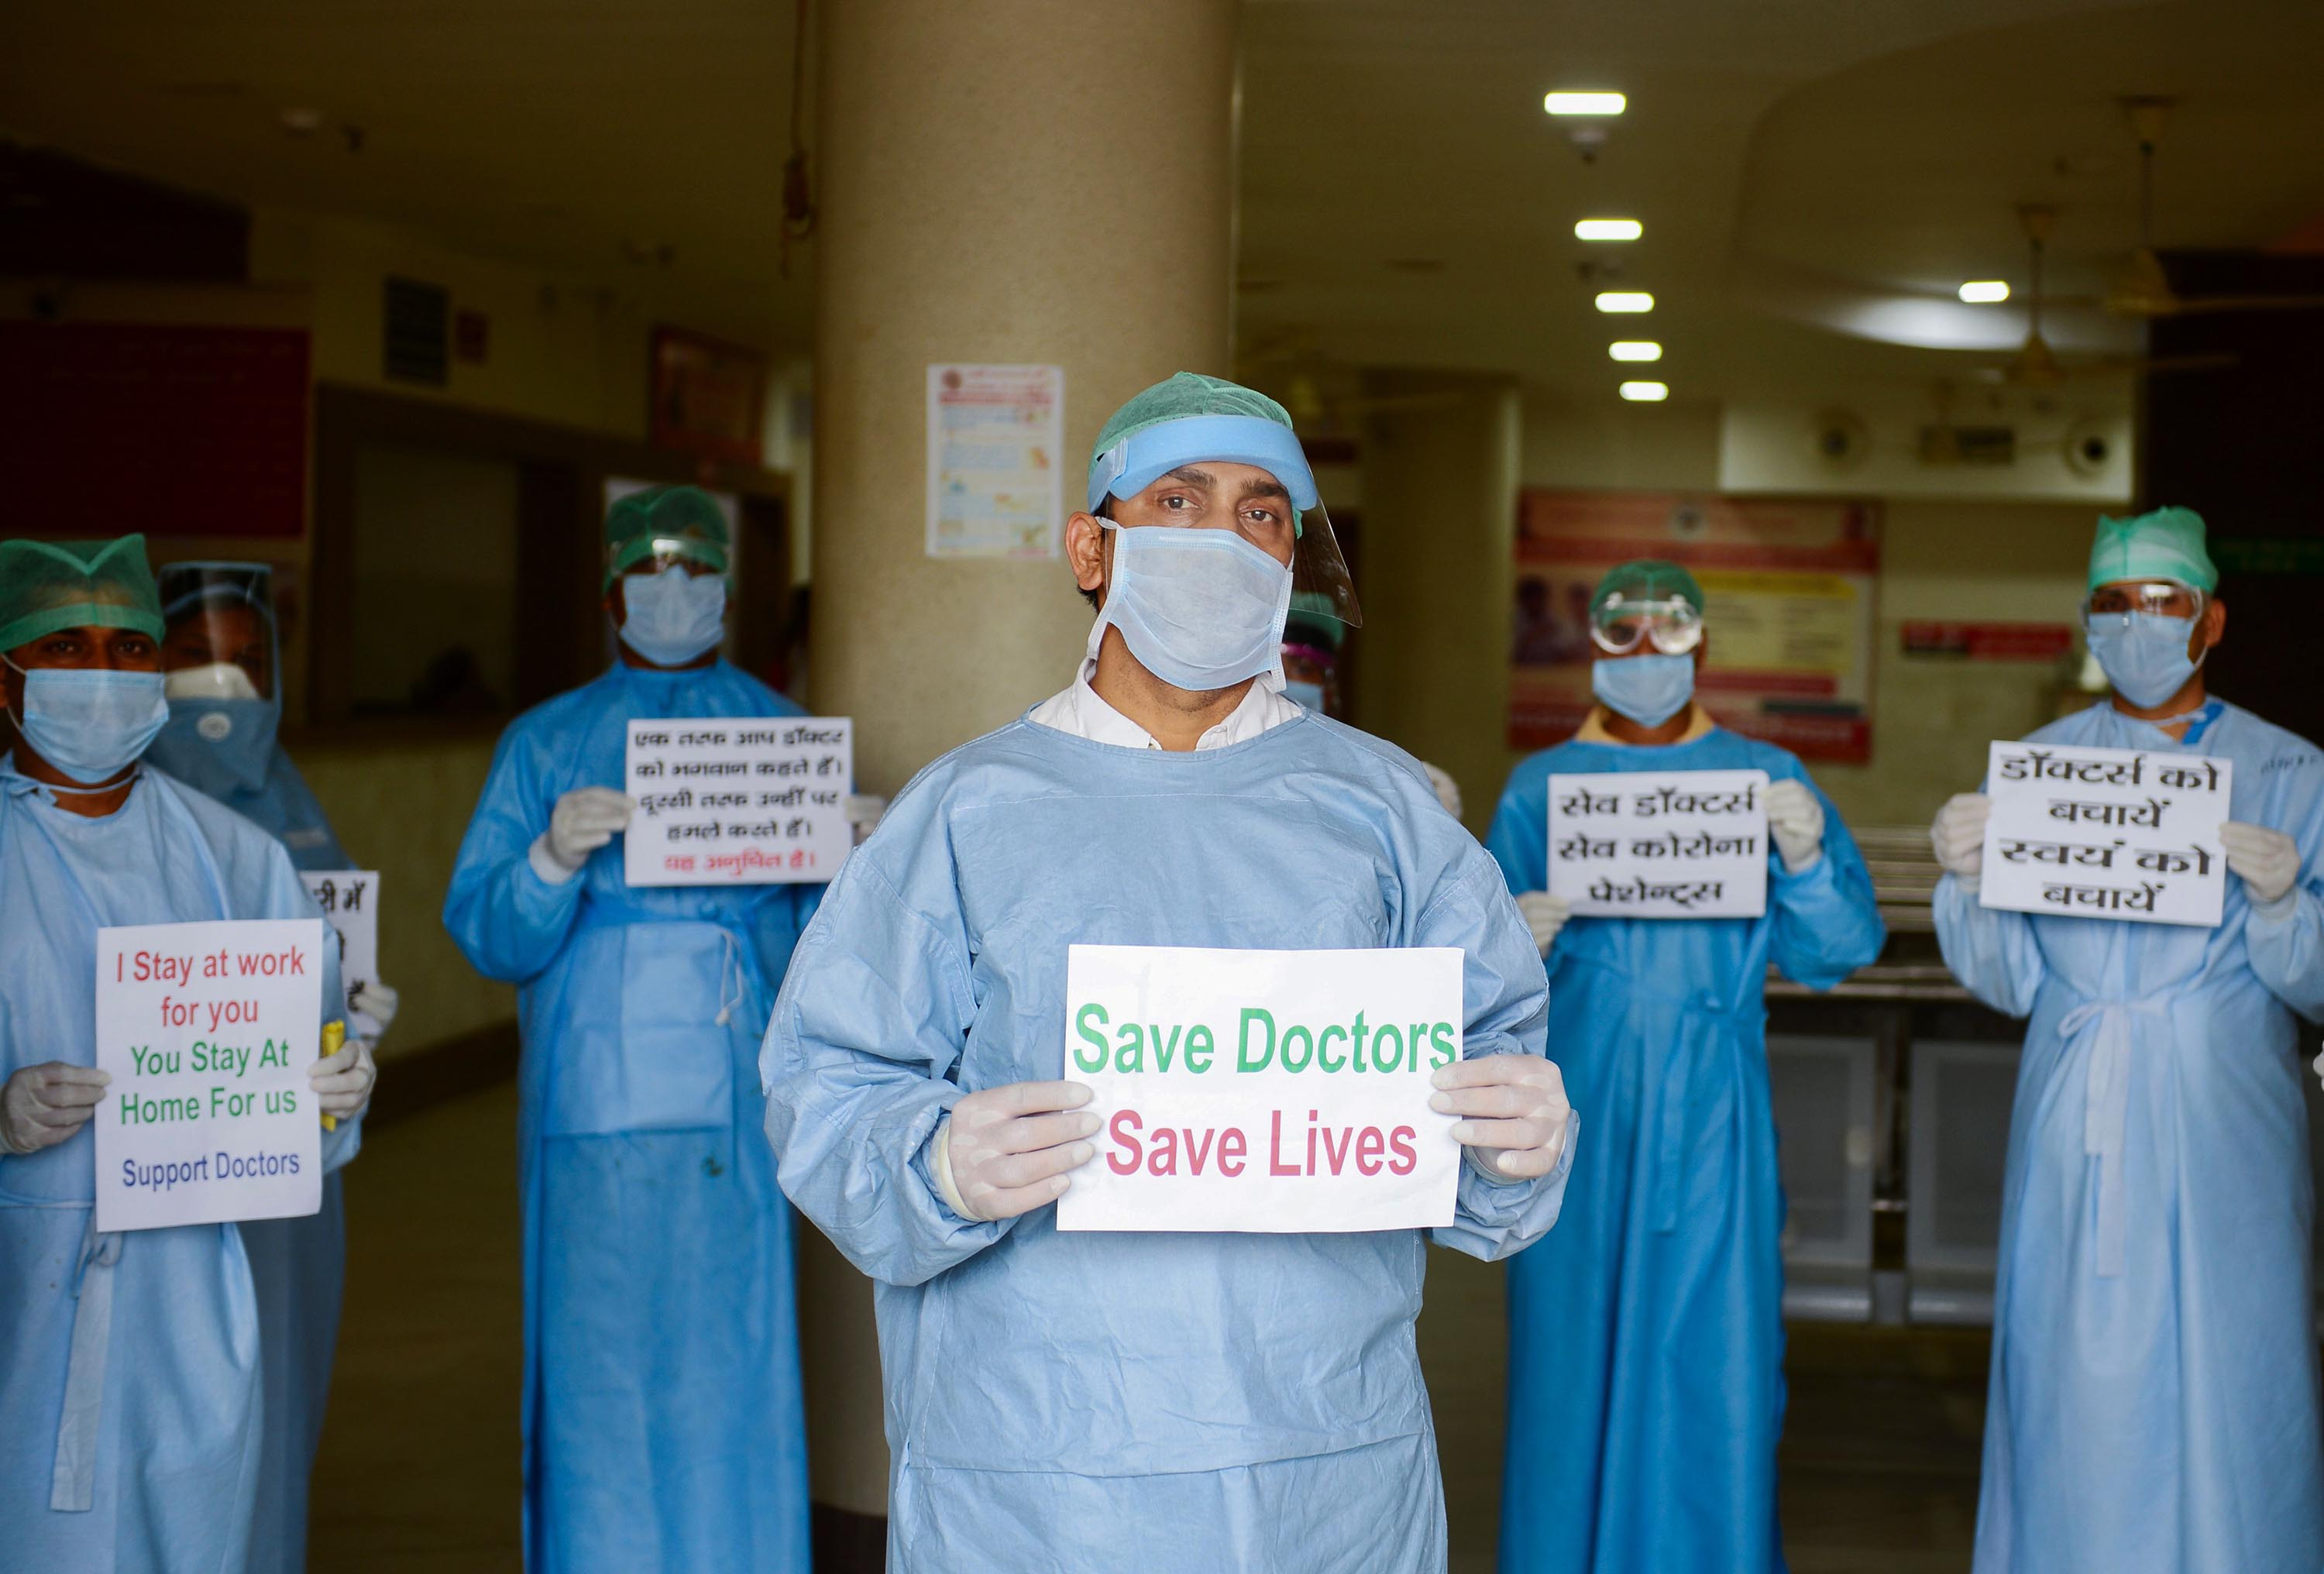 Doctors and medical staff of Narayan Swaroop Hospital in Allahabad hold placards on April 16 to protest against recent assaults on health care workers in India.